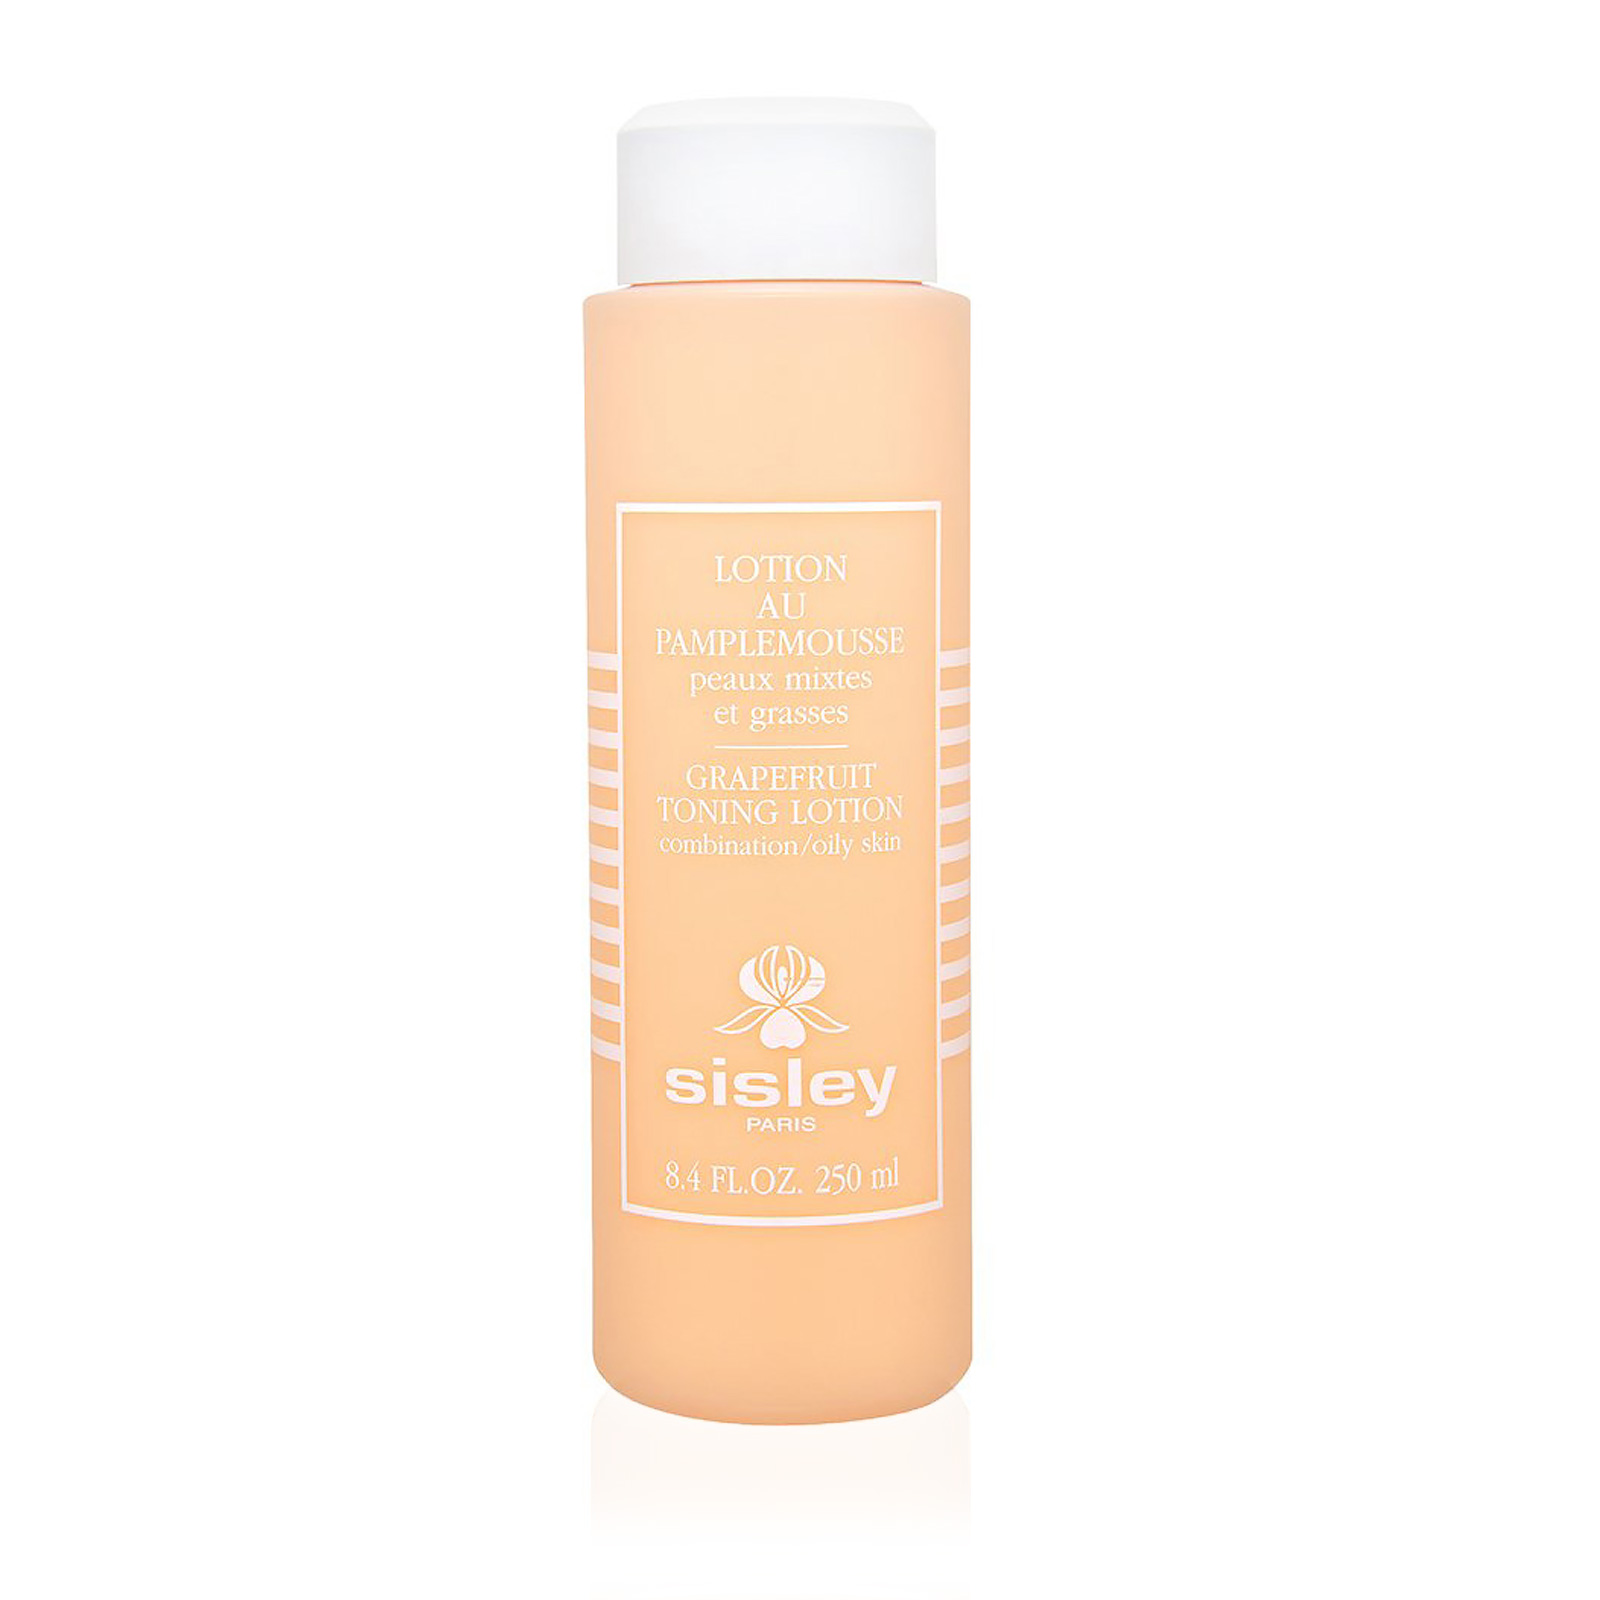 Grapefruit Toning Lotion (For Combination / Oily Skin)